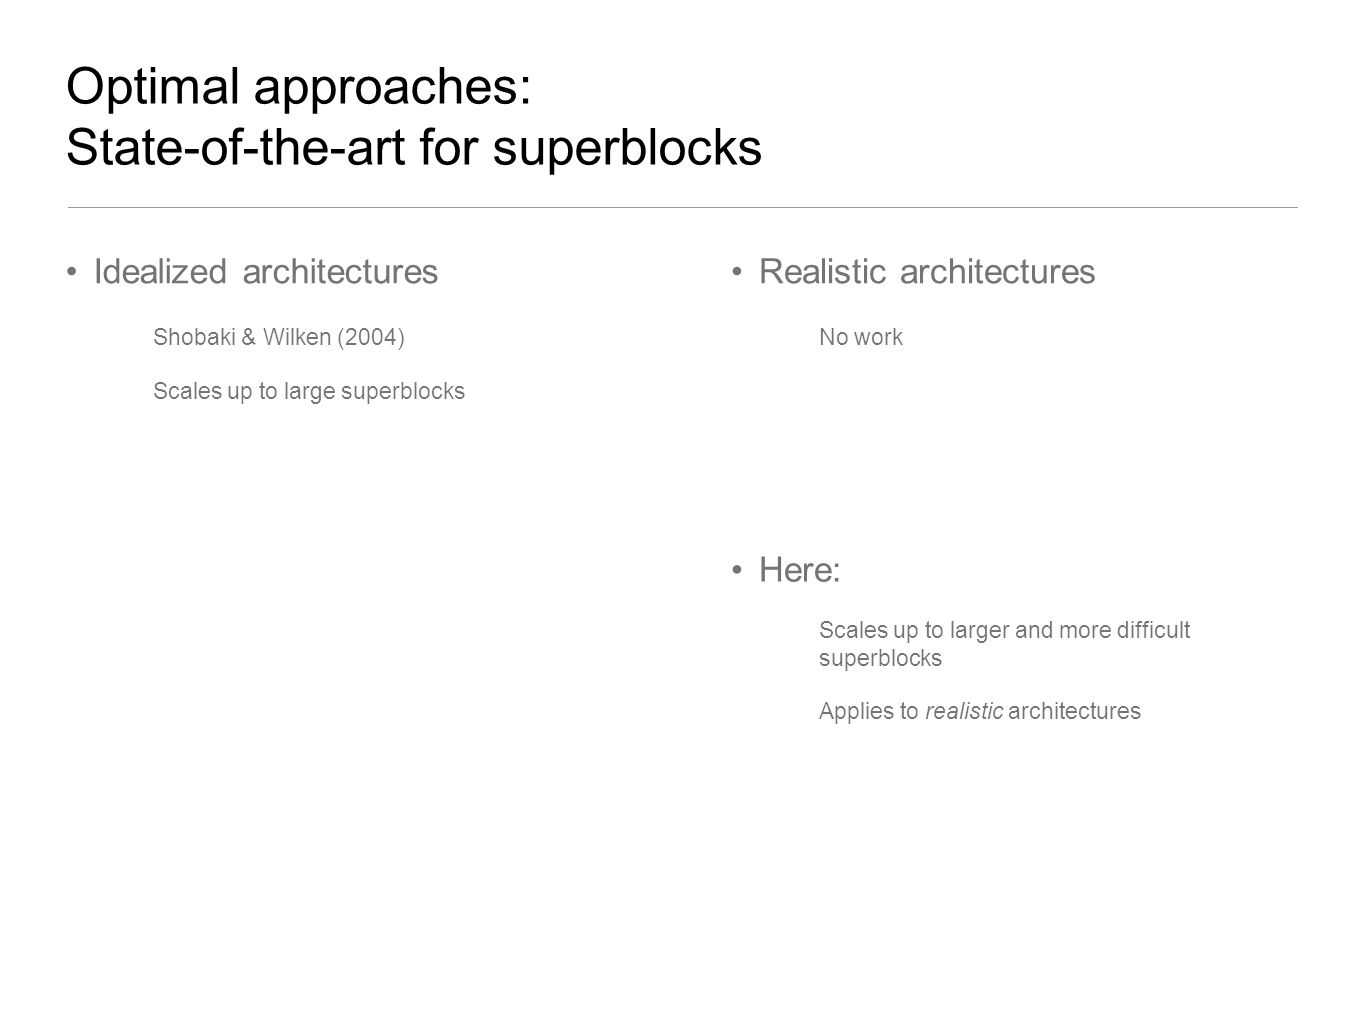 Optimal approaches: State-of-the-art for superblocks